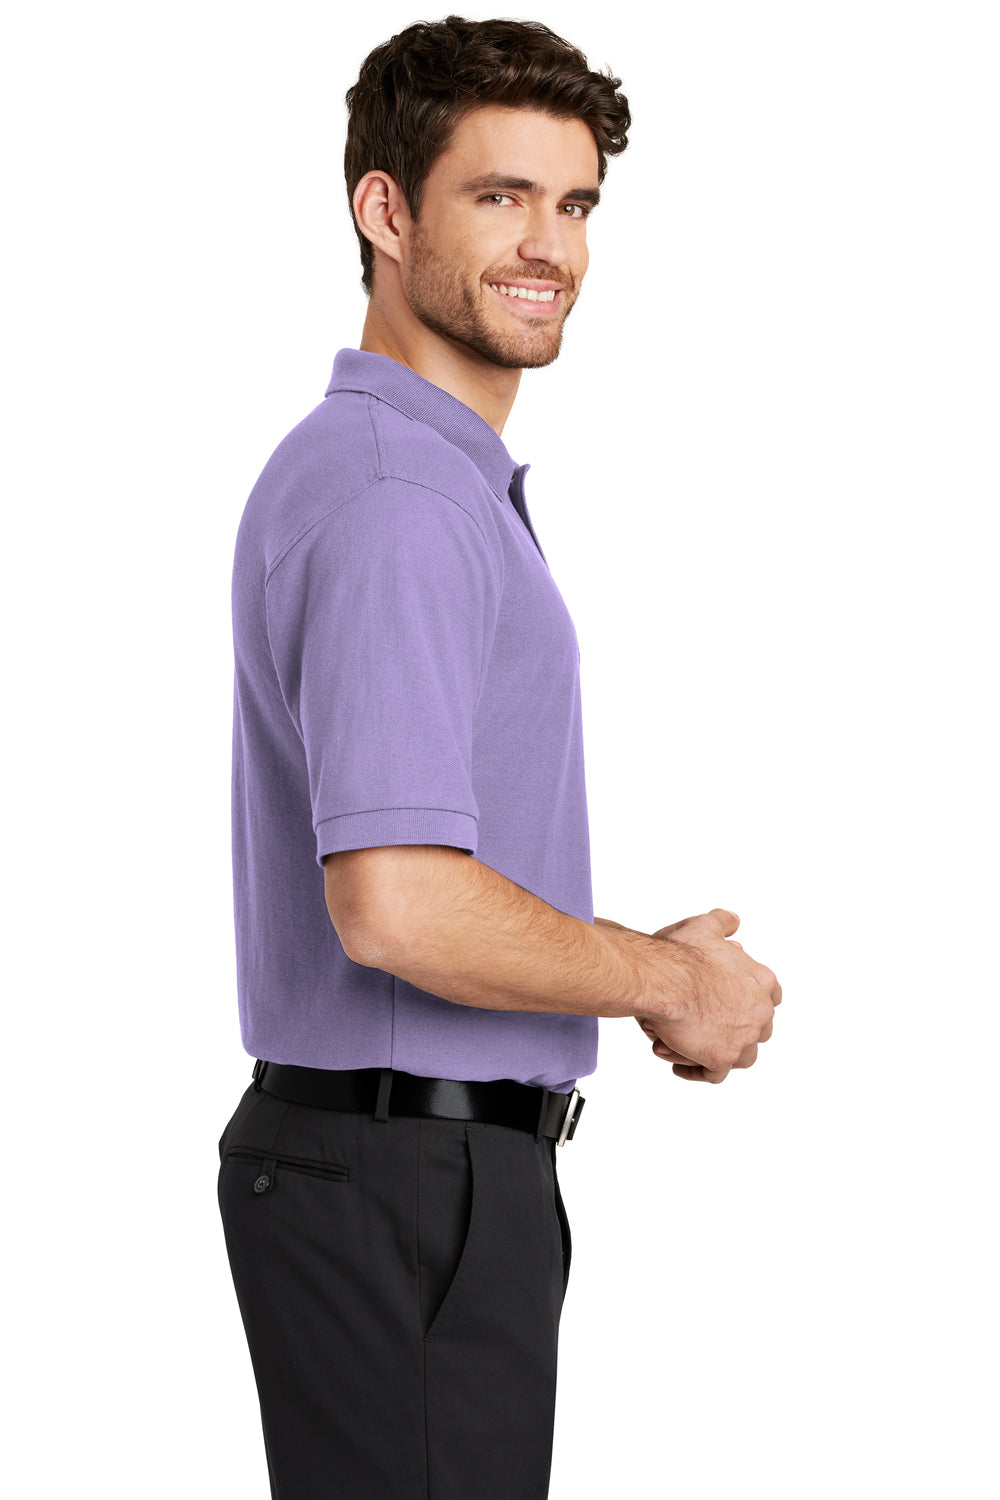 Port Authority K500 Mens Silk Touch Wrinkle Resistant Short Sleeve Polo Shirt Lavender Purple Side